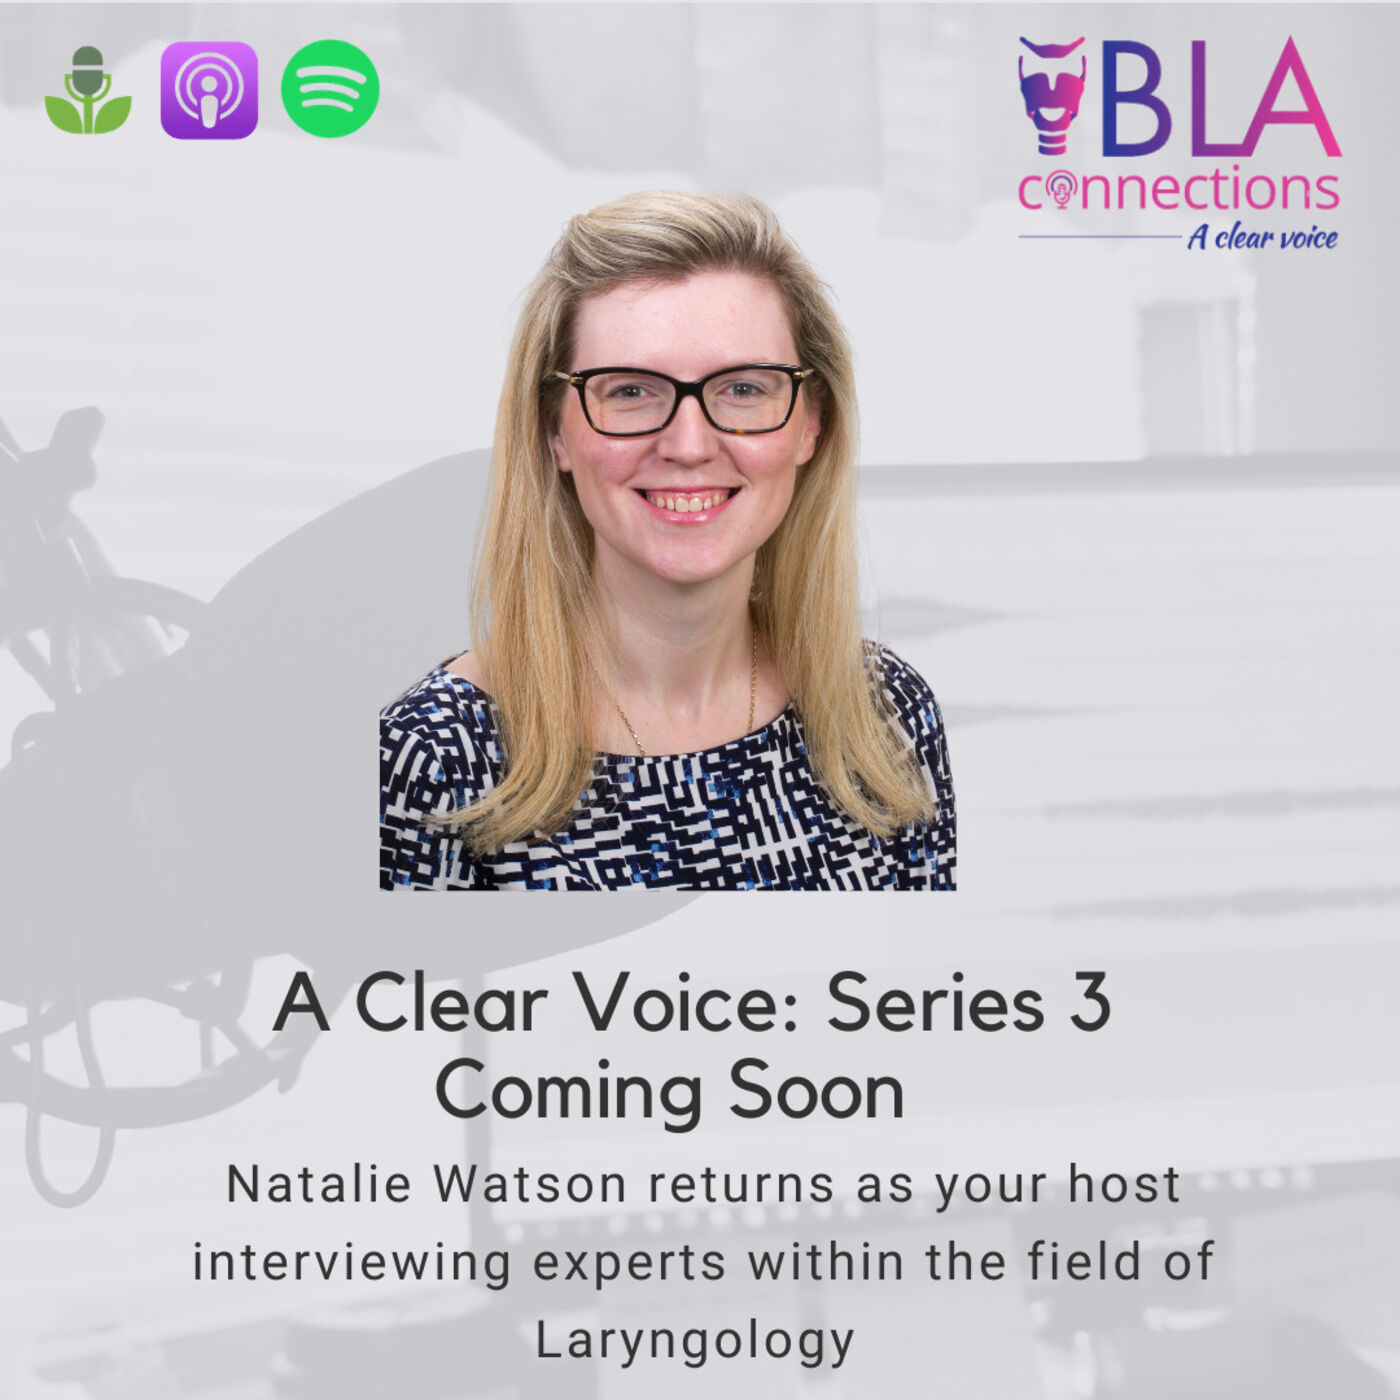 Introducing Series 3 of BLA Connections: A Clear Voice